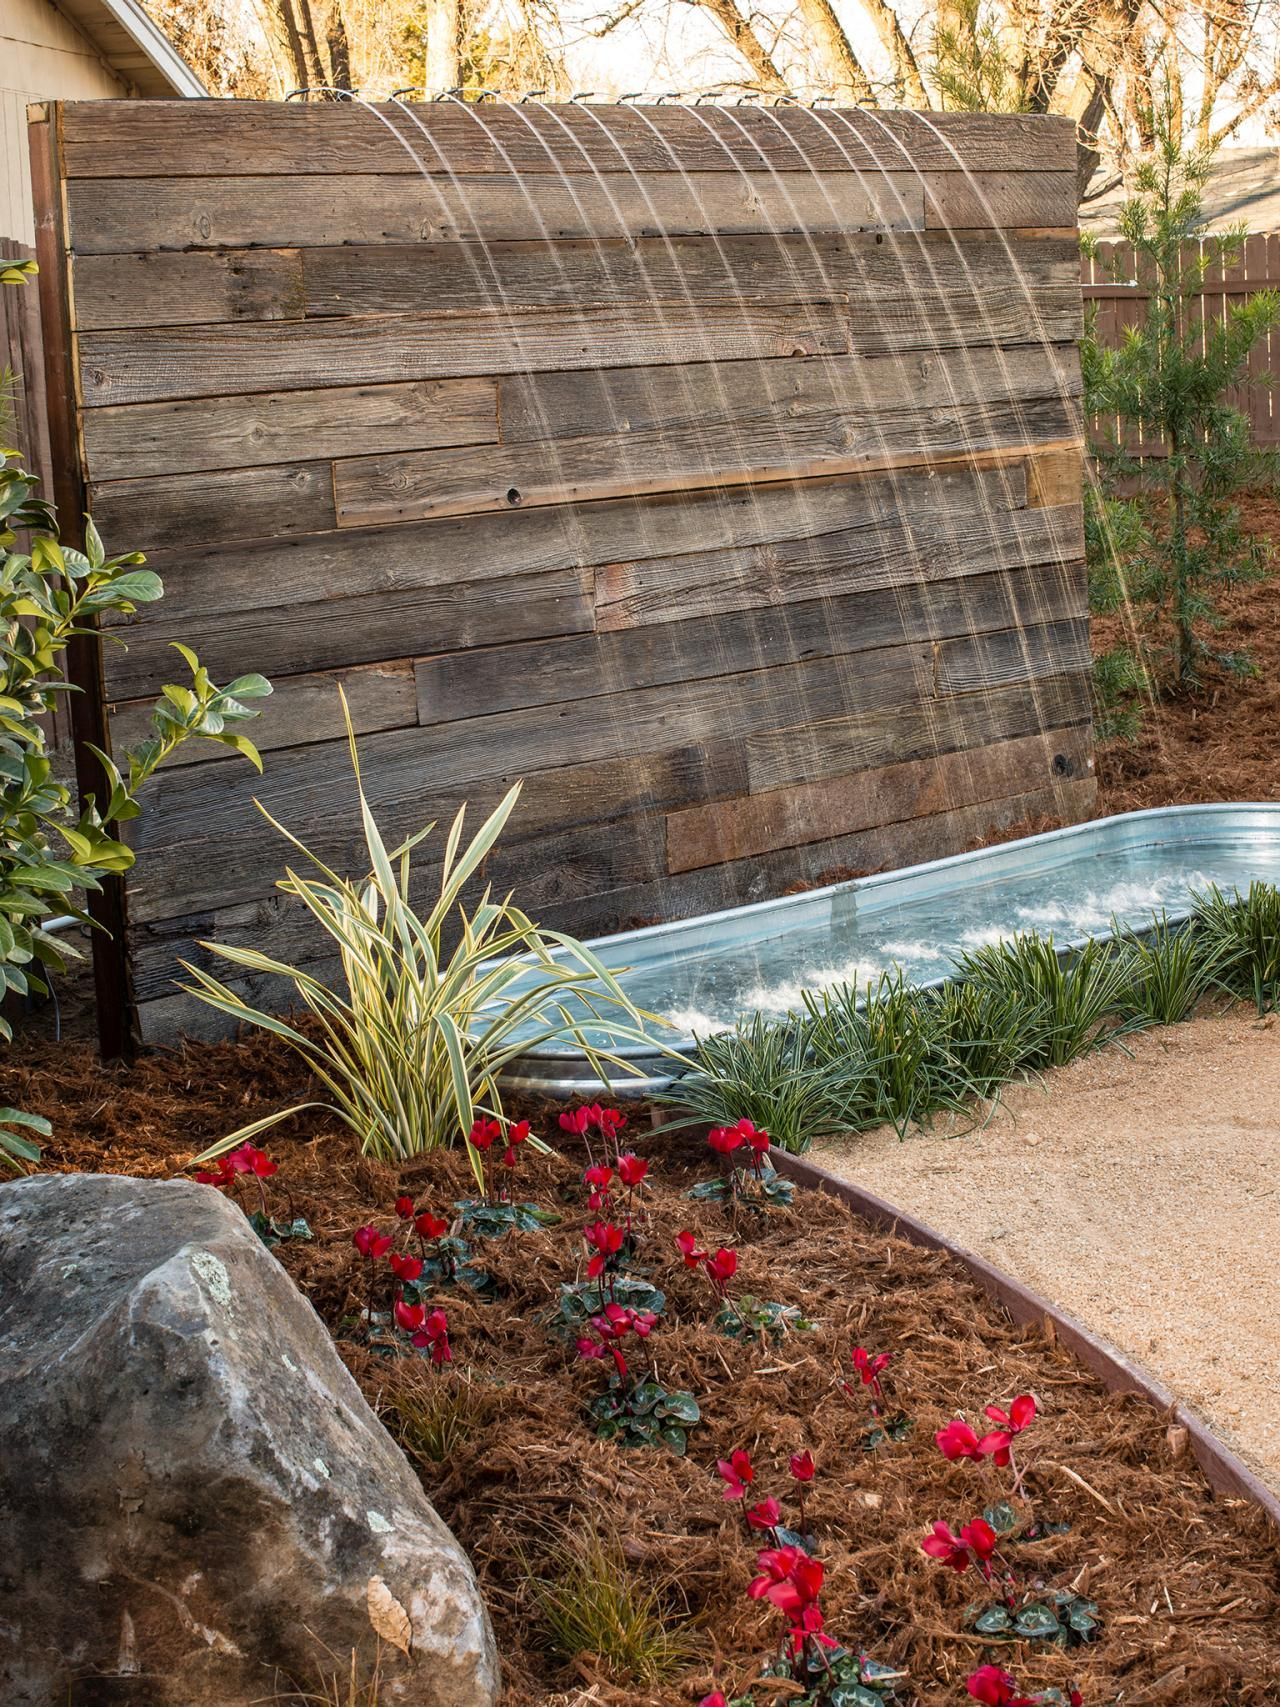 Water Feature Using Reclaimed Wood Galvanized Trough